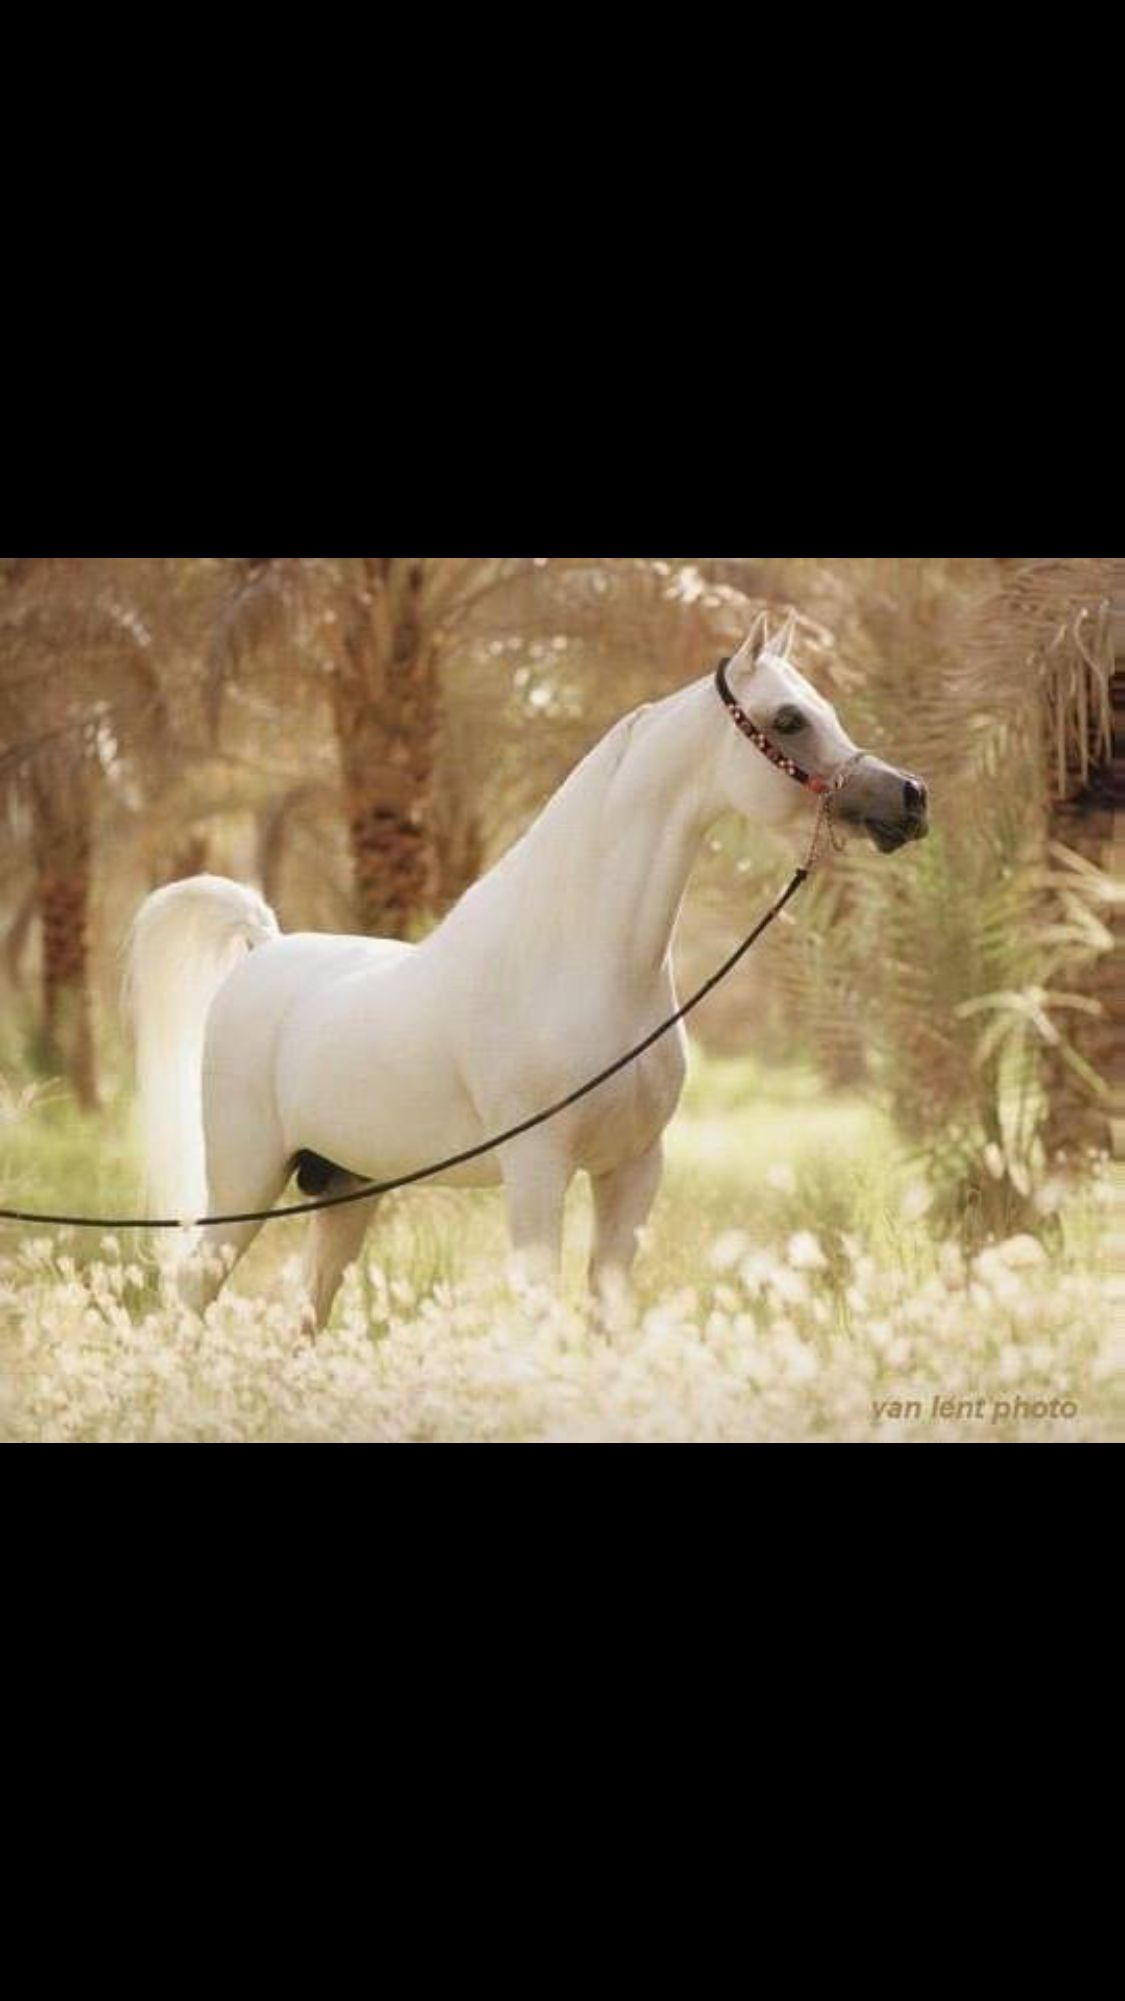 Pin By Celina Sparsbrod On My Entire World Revolves Around Them Beautiful Arabian Horses Beautiful Horses Arabian Horse